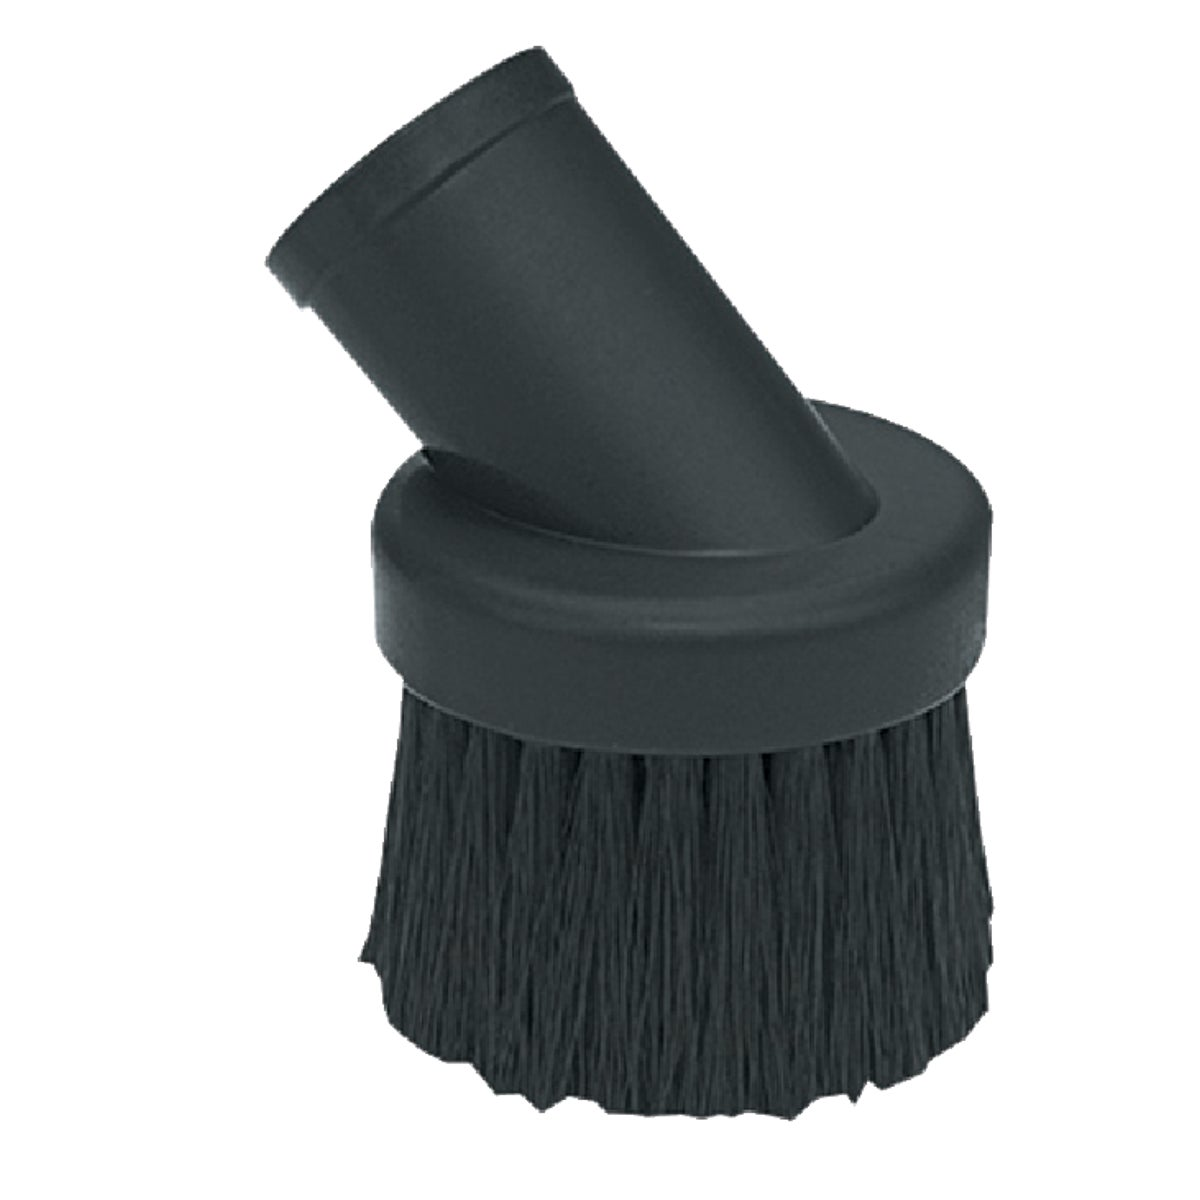 "1-1/4"" VAC ROUND BRUSH - 9061500 by Shop Vac Corp"